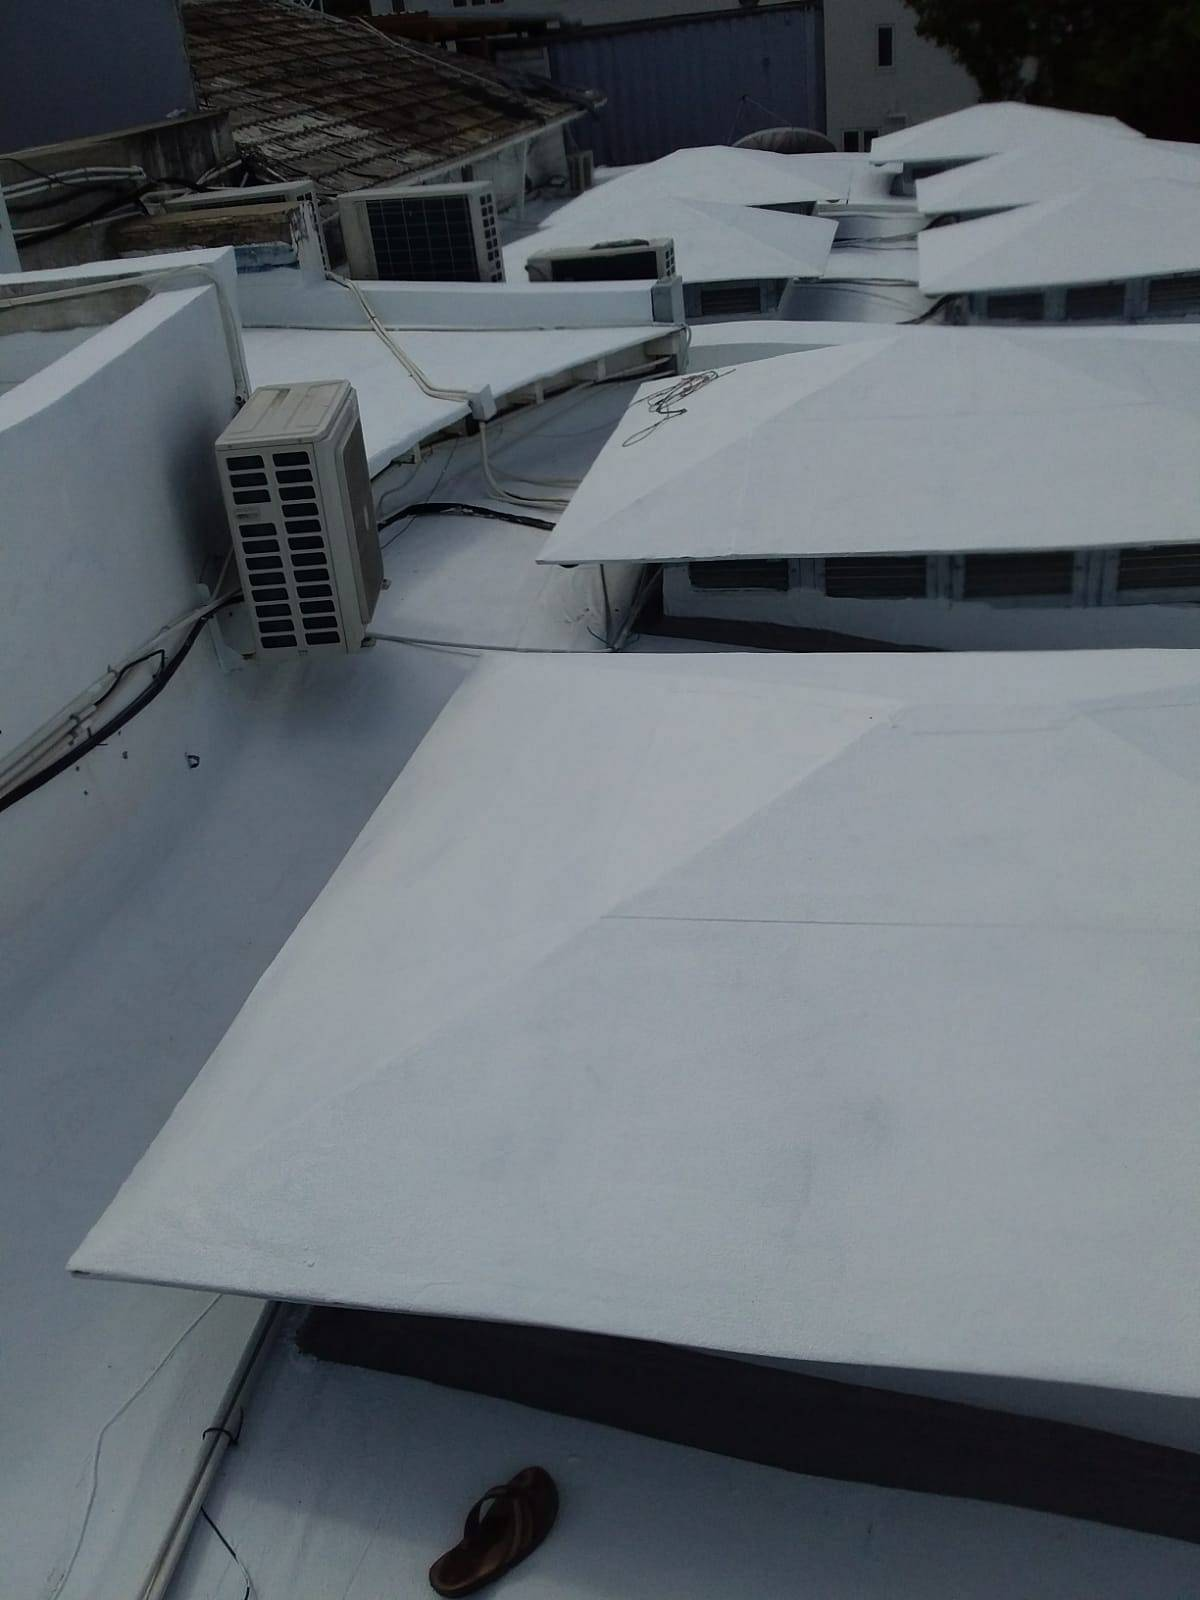 Waterproofing of Restaurant Roof on the West Coast with a Heat Reflectant coating. Waterproofing restaurant roof with a heat reflectant  coating makes restaurant 3/8 cooler. Roof was waterproofed with Impermeabilizante E-88 & Tecma Imperal P-2008